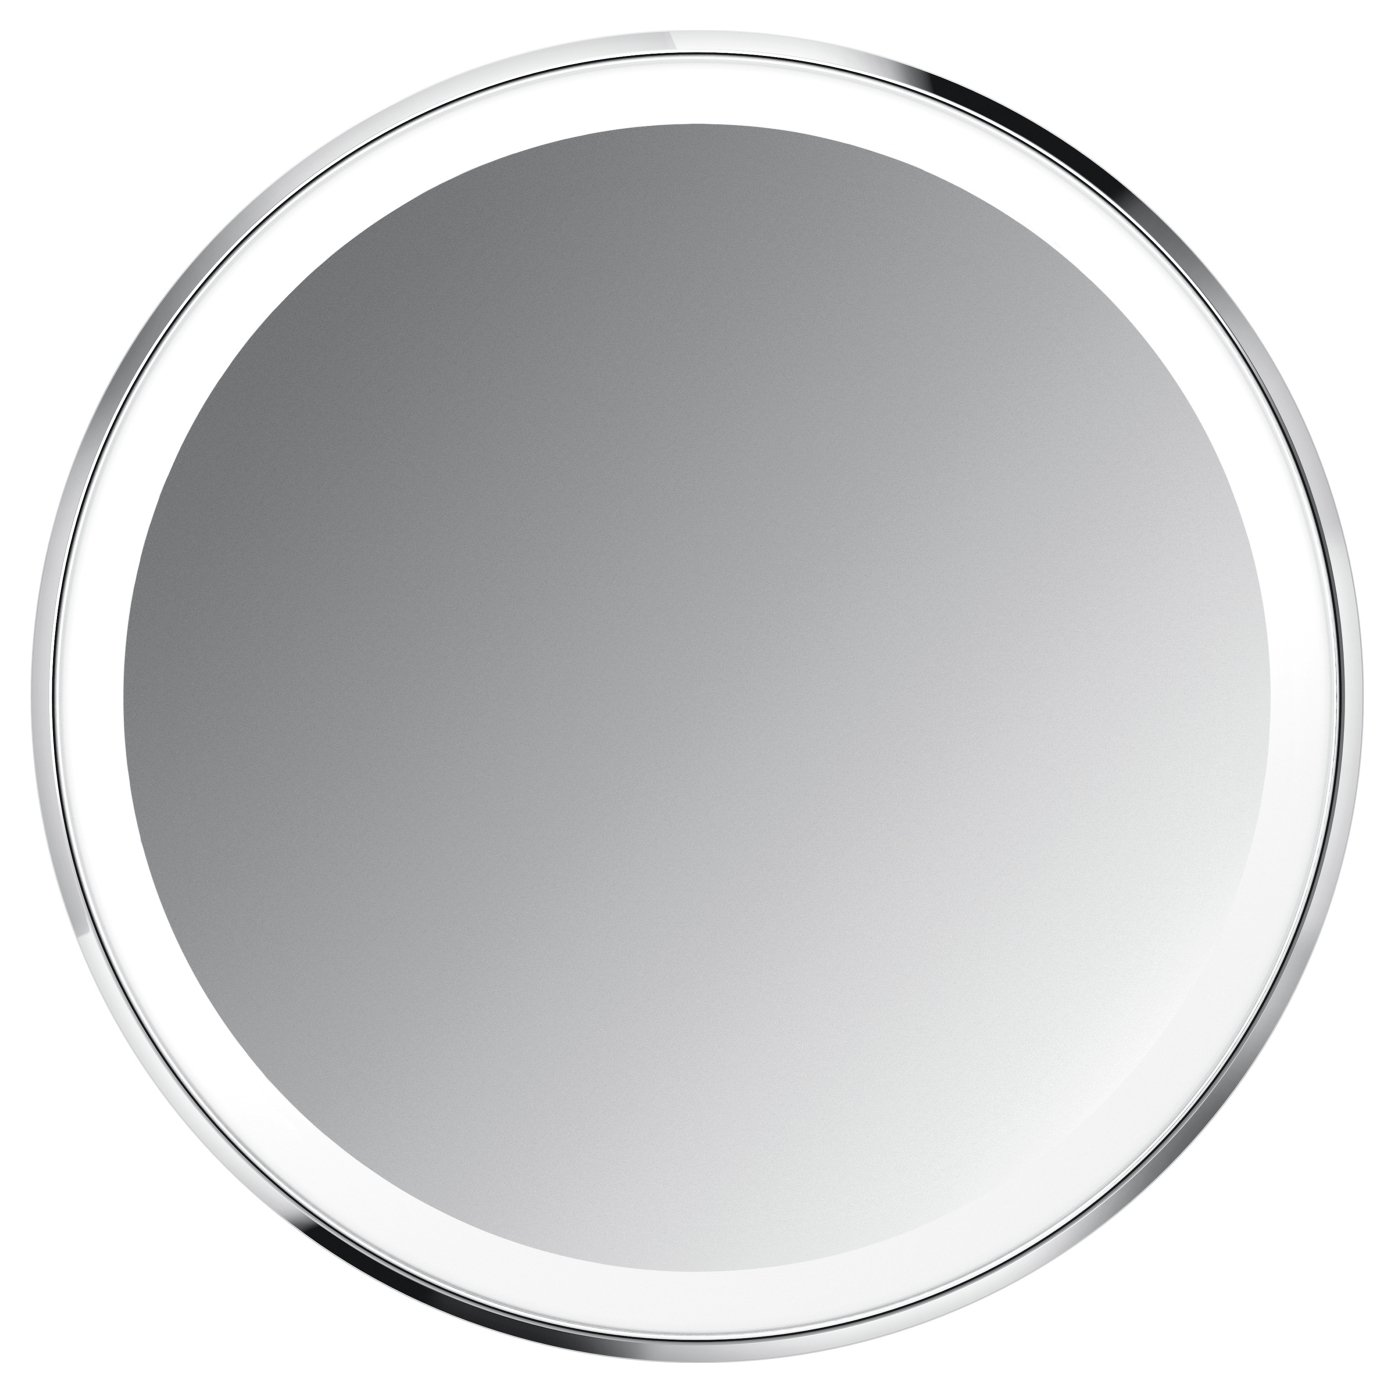 Simplehuman Compact Brushed Mirror